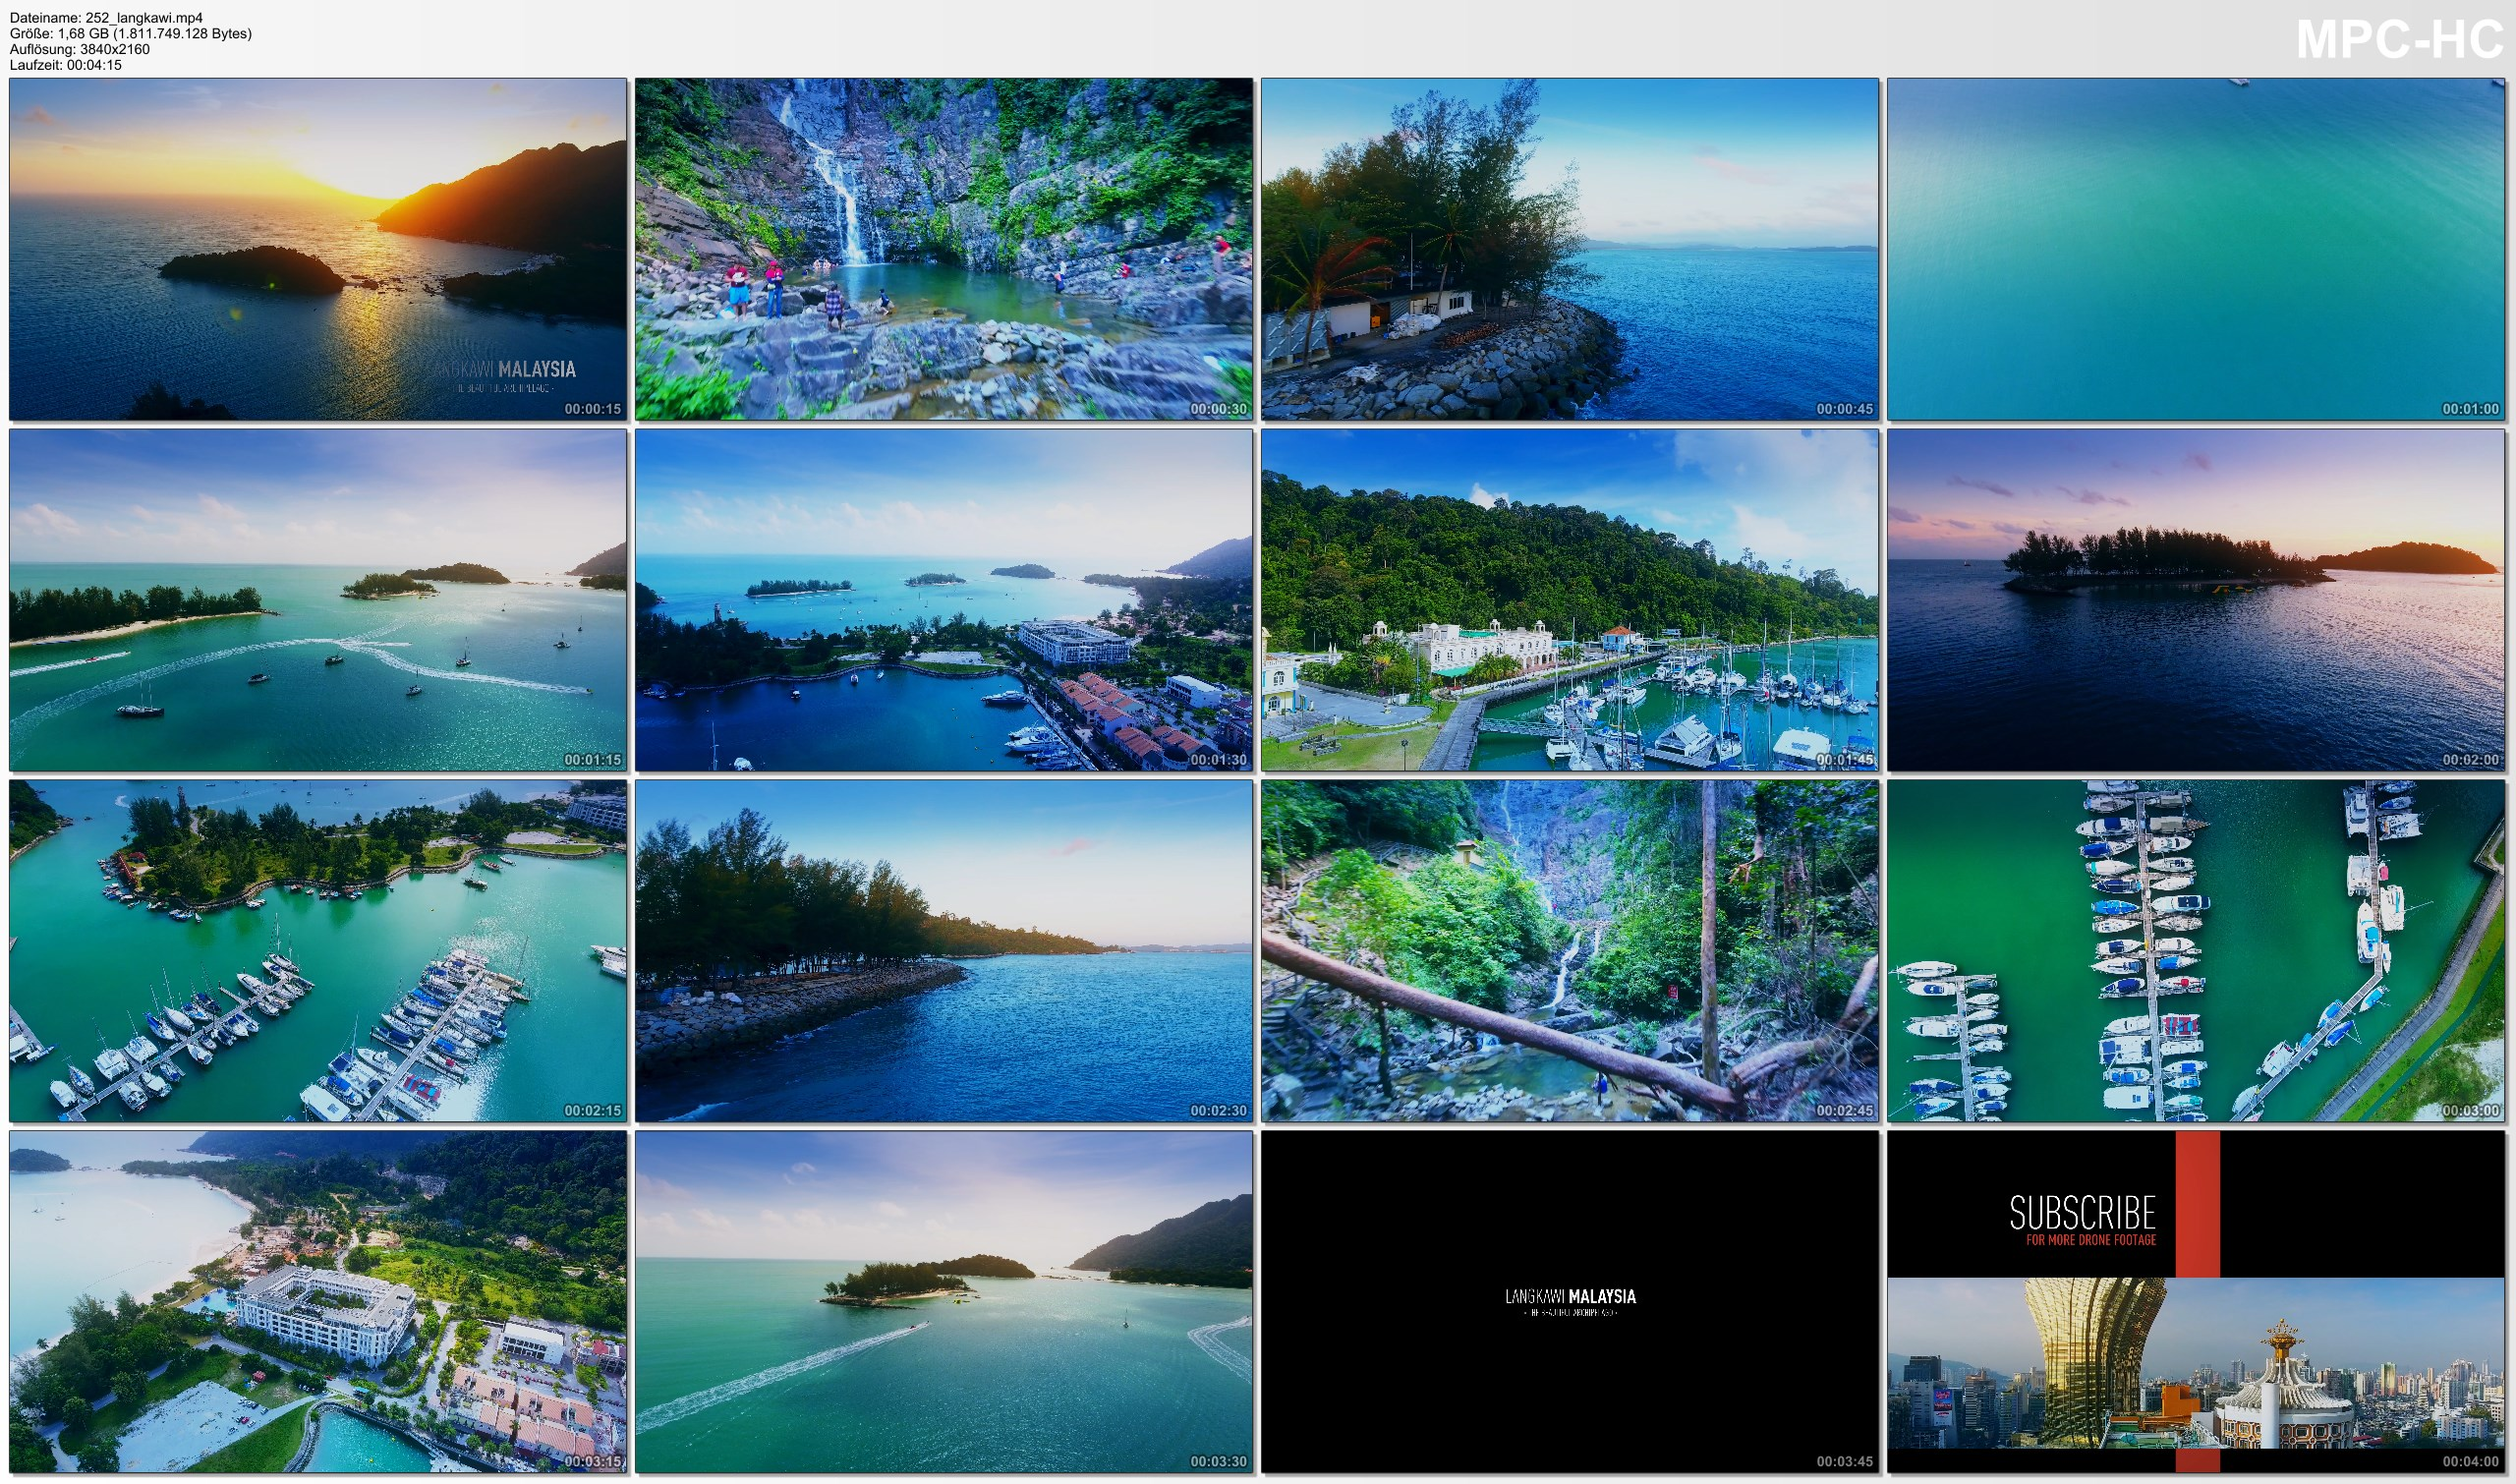 Drone Pictures from Video 【4K】Drone Footage | Langkawi - The Beautiful Archipelago | MALAYSIA 2019 .: Birds View | Aerial Film